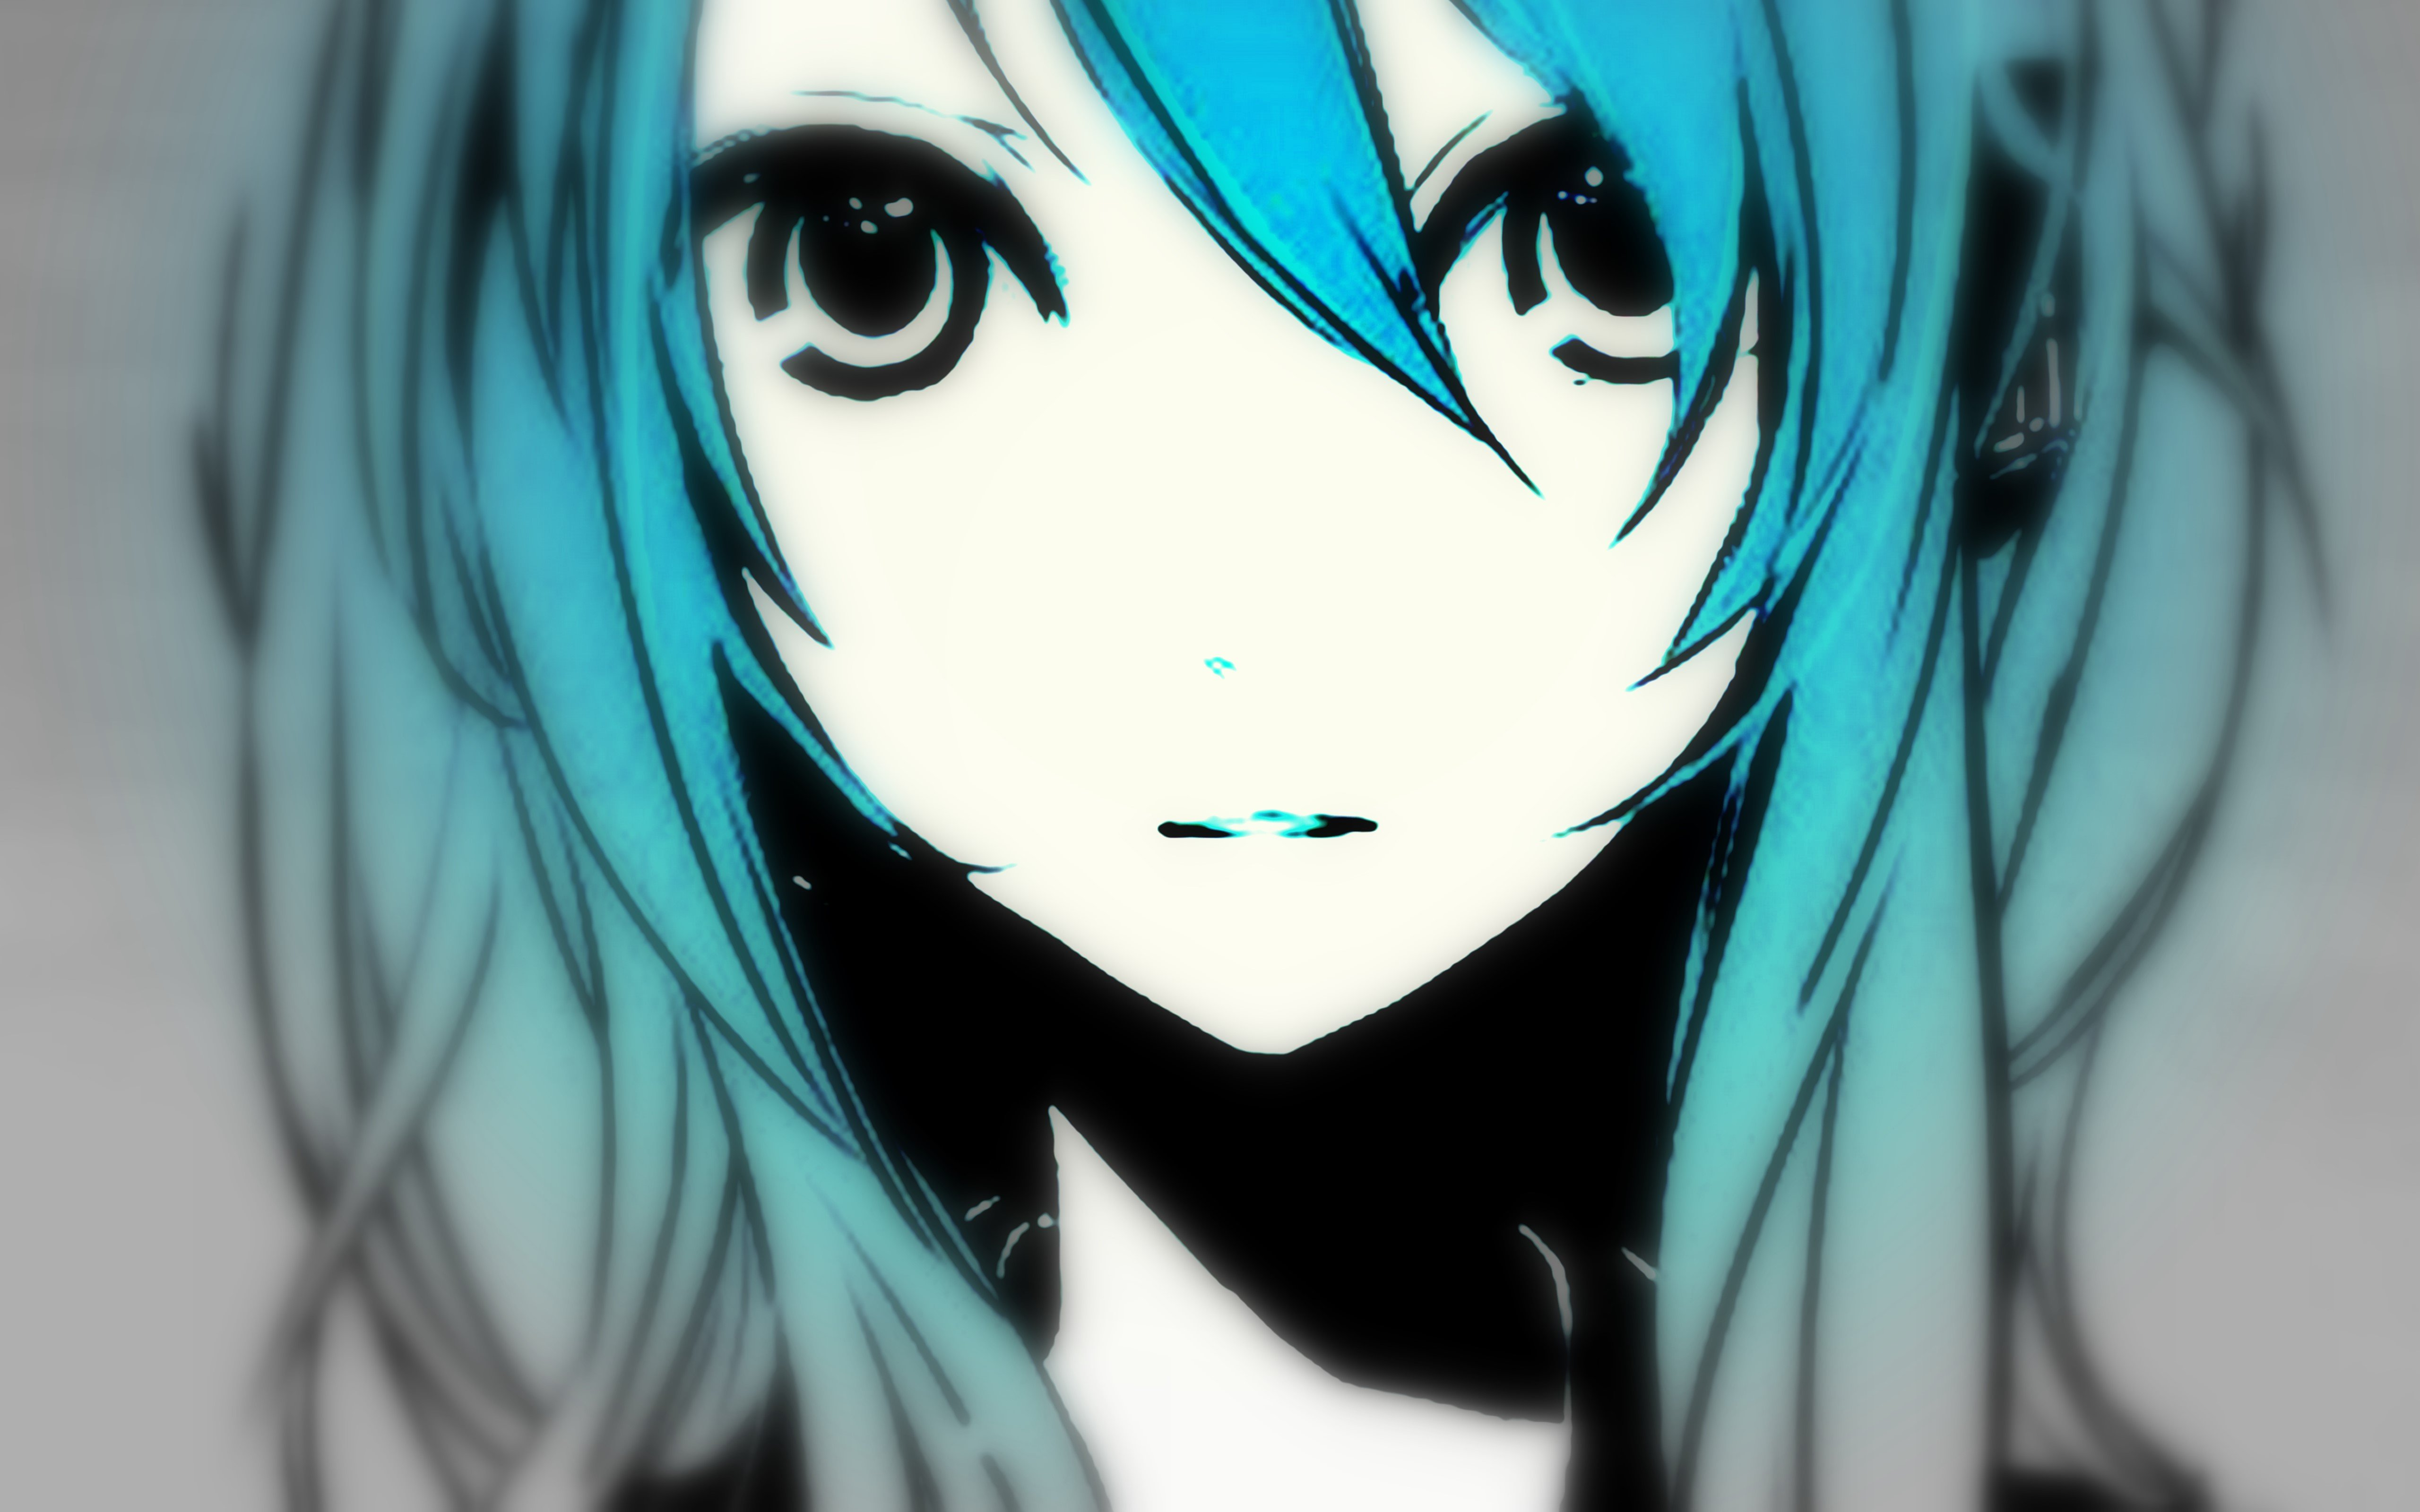 vocaloid cute miku anime - photo #37